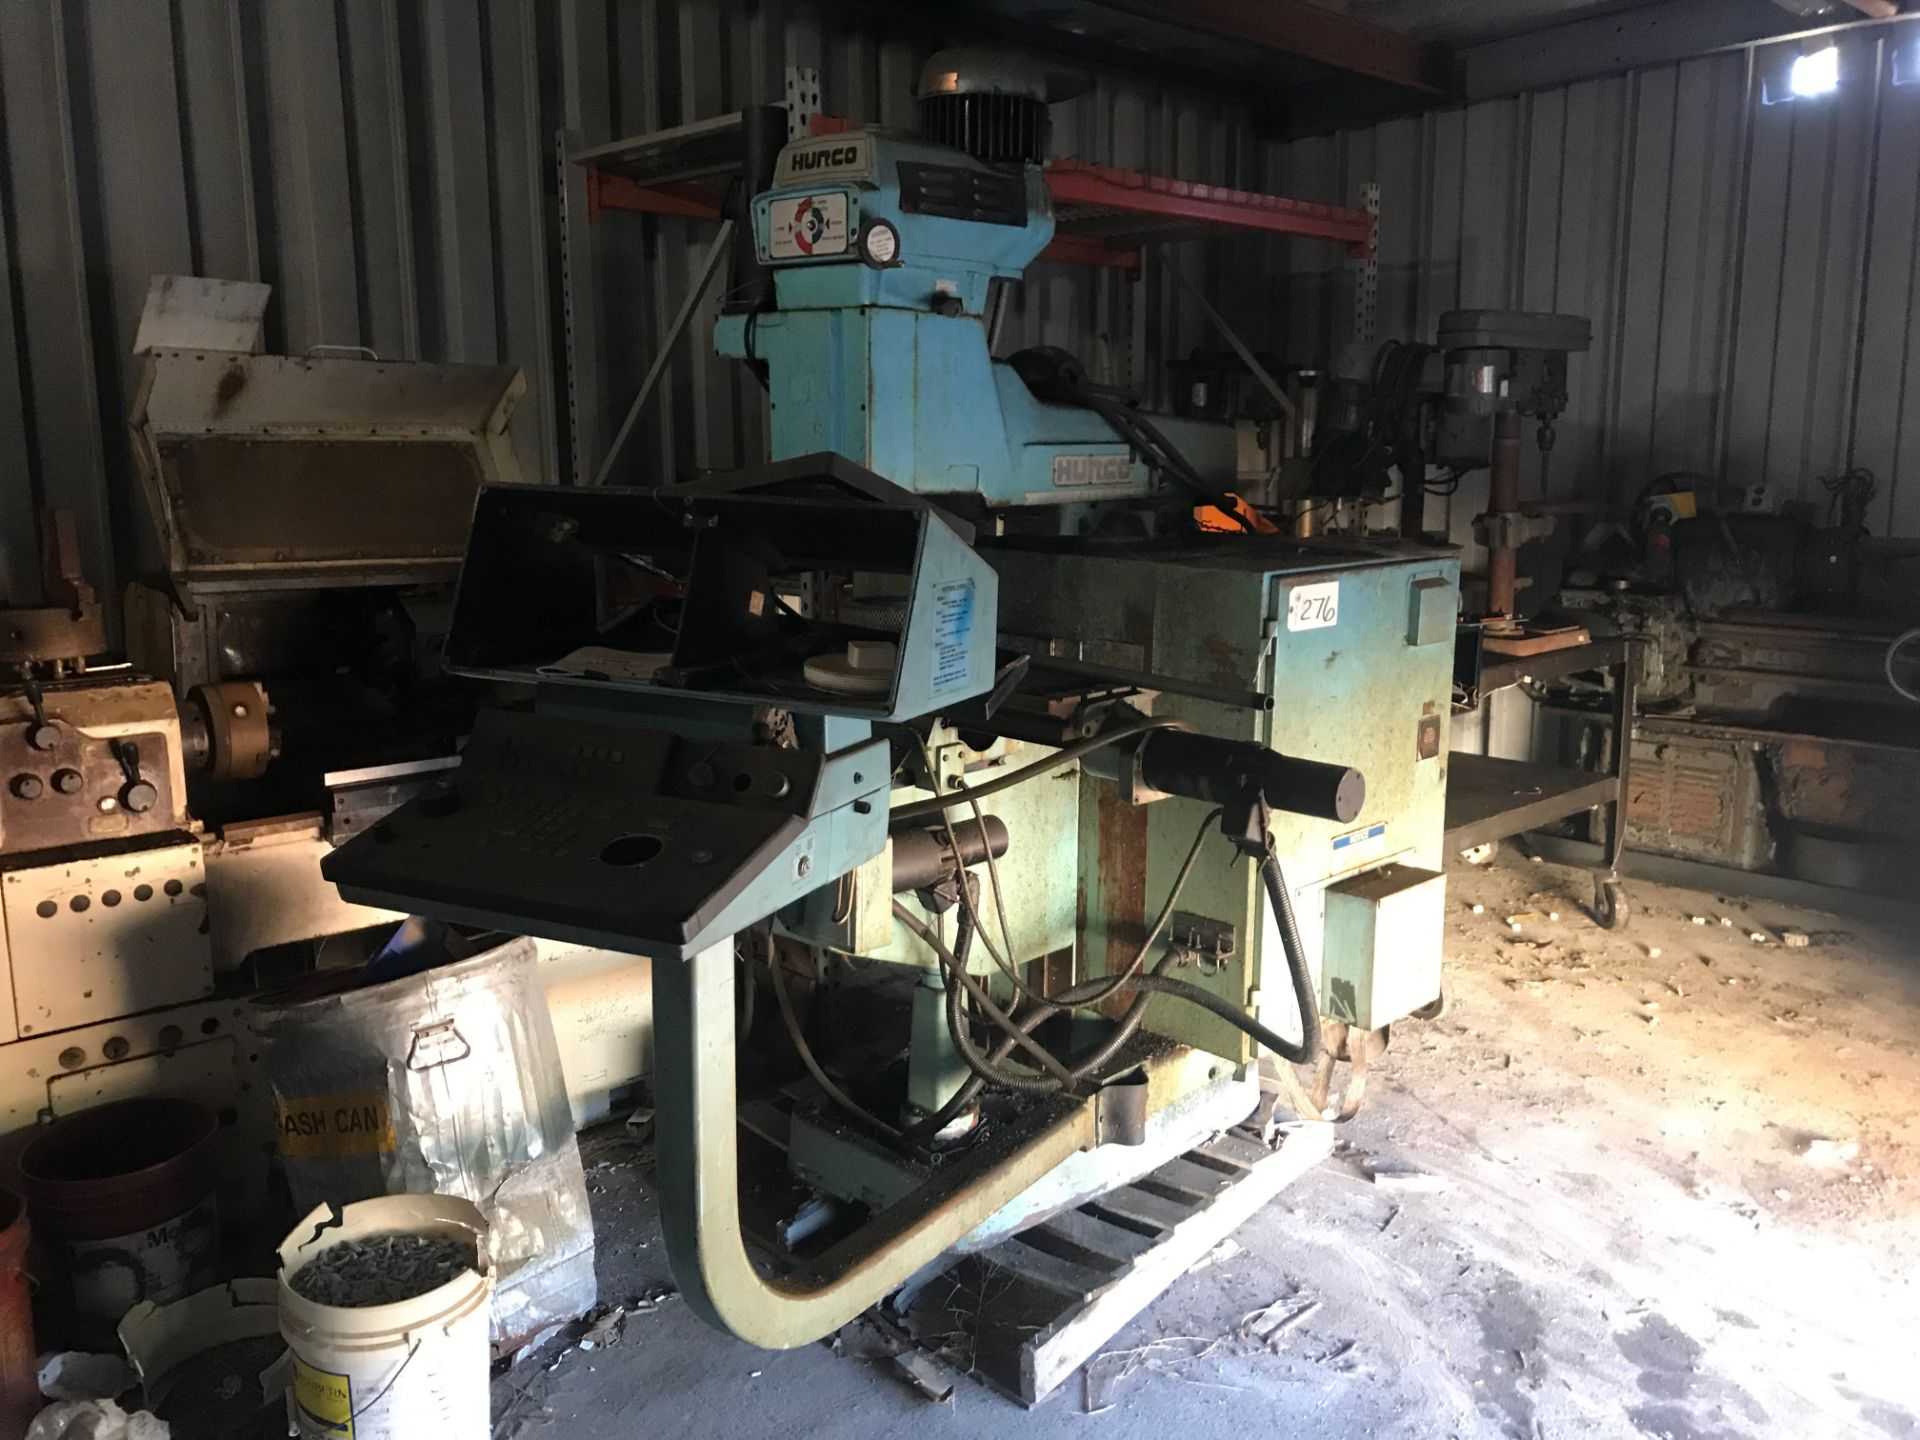 Lot 276 - Hurco Milling Machine  (under repair in shed)